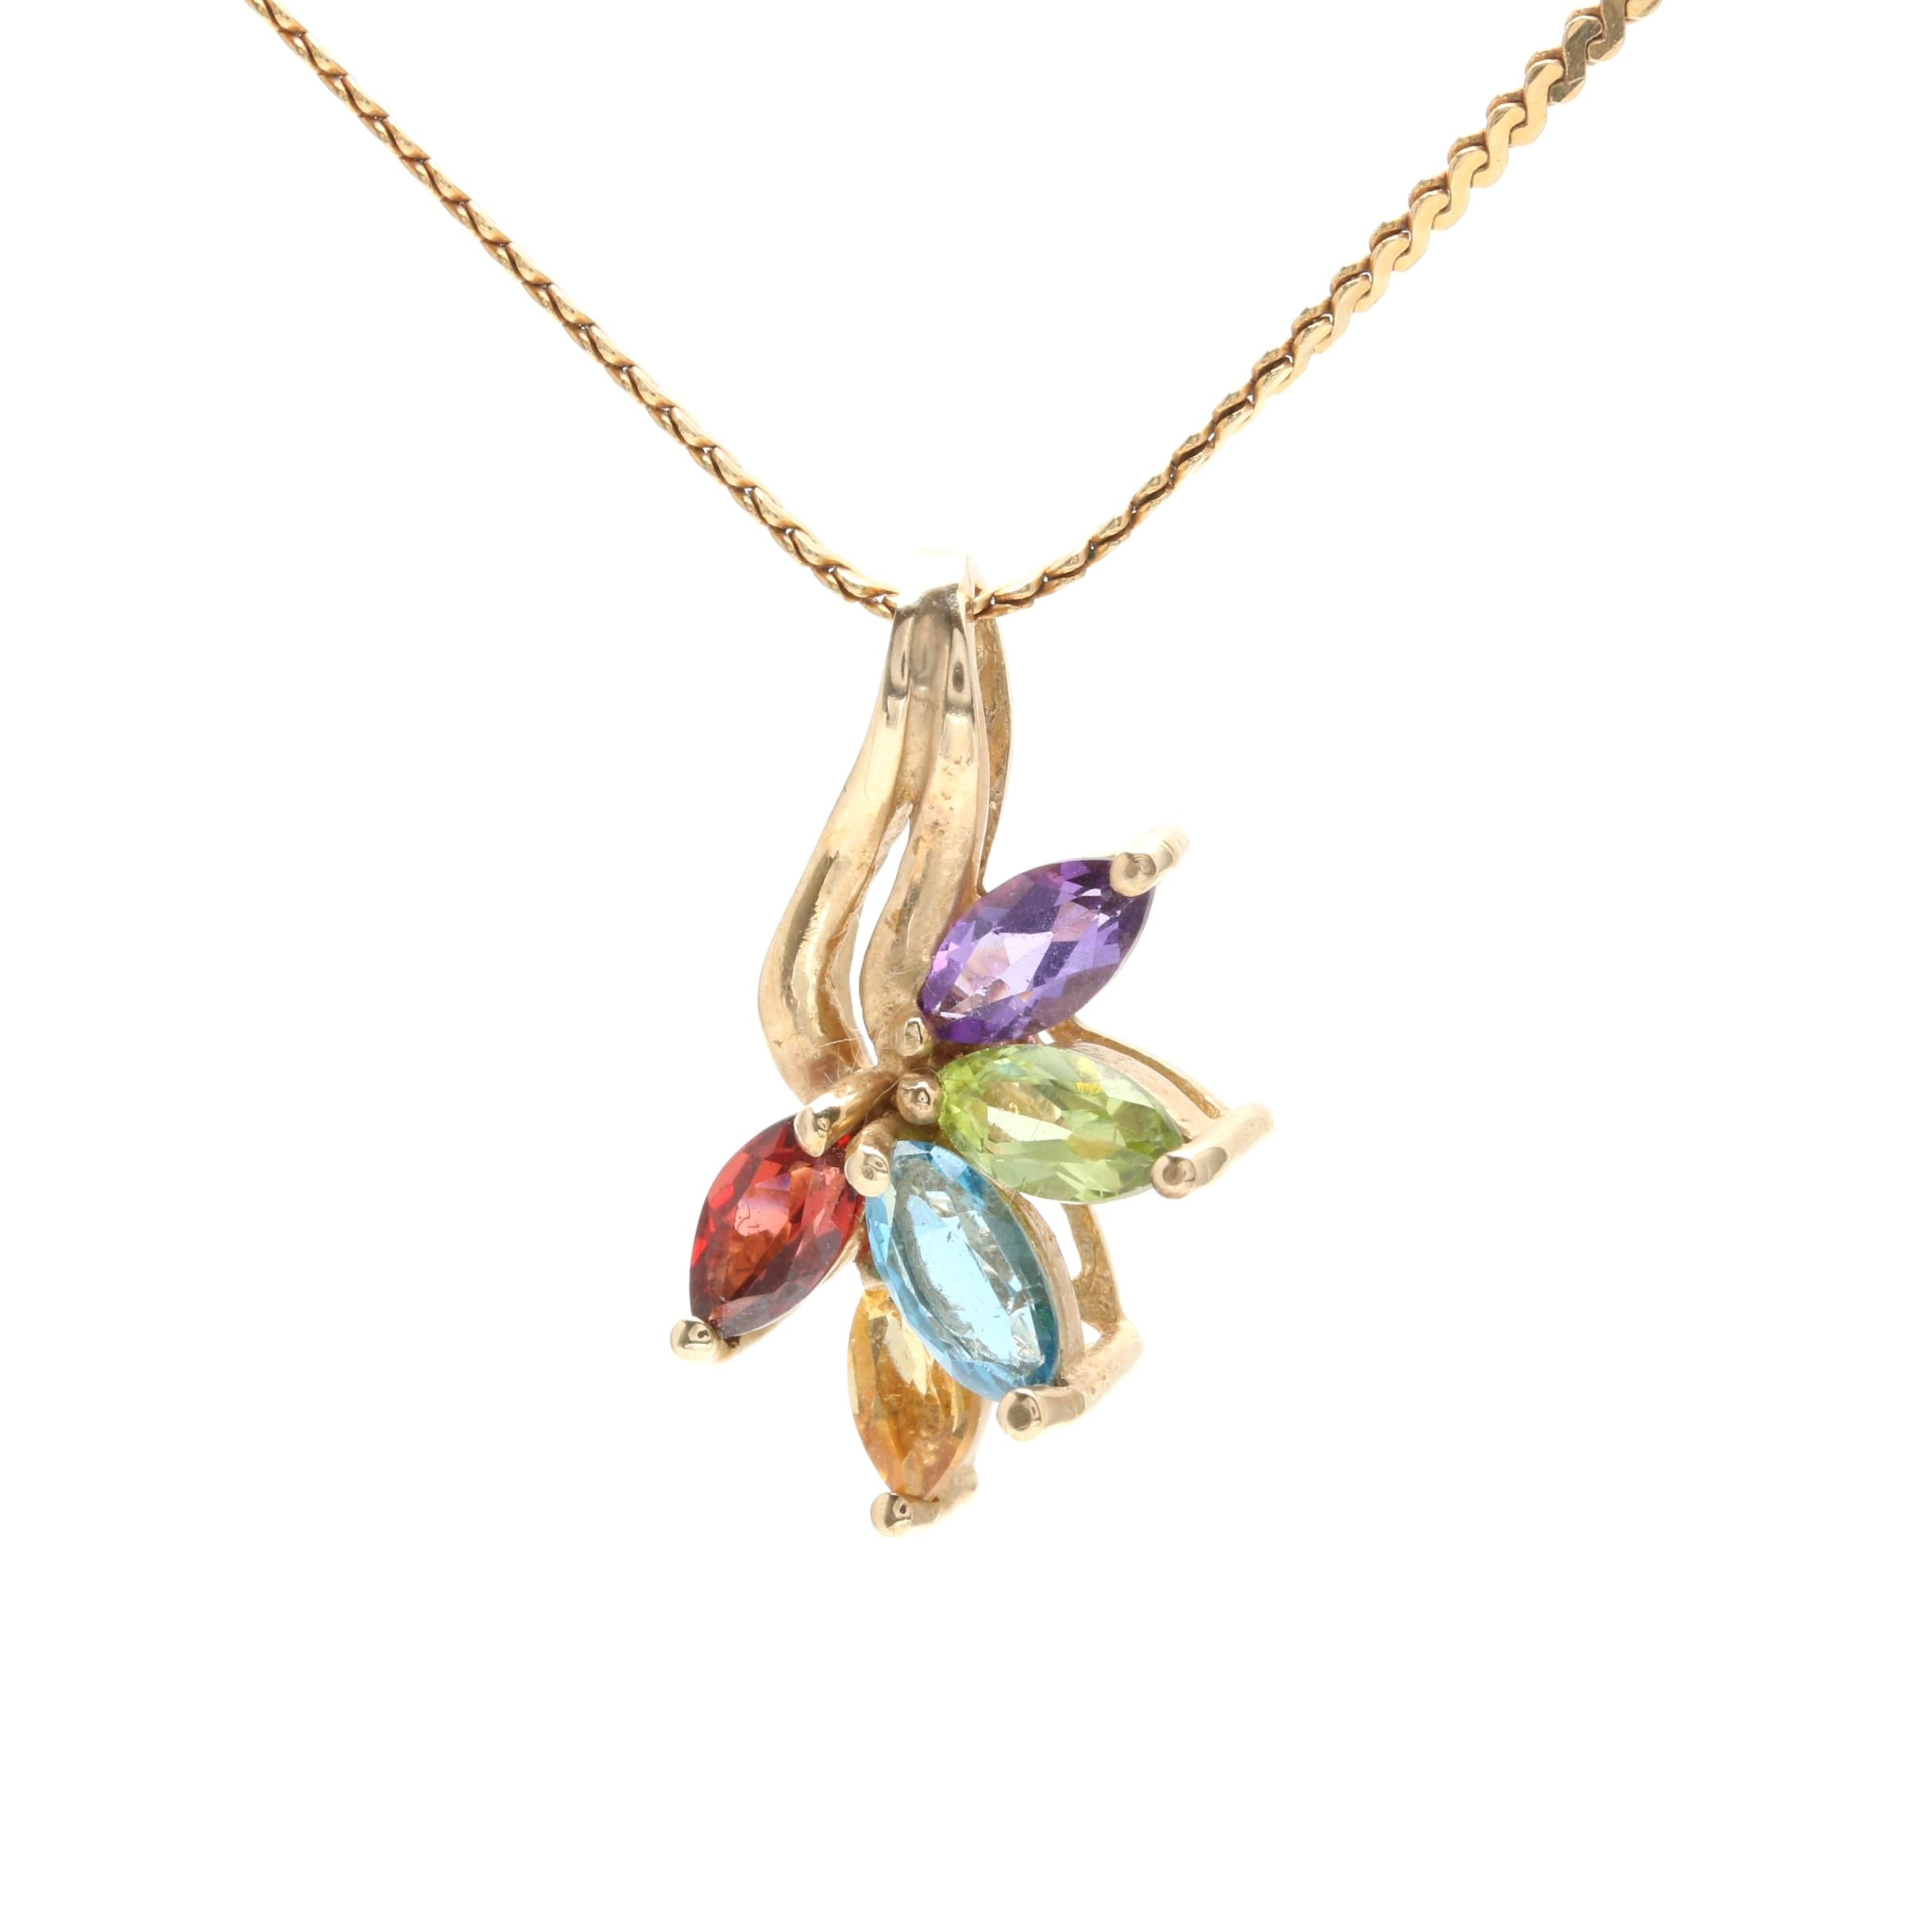 10K and 14K Yellow Gold Necklace and Gemstone Pendant